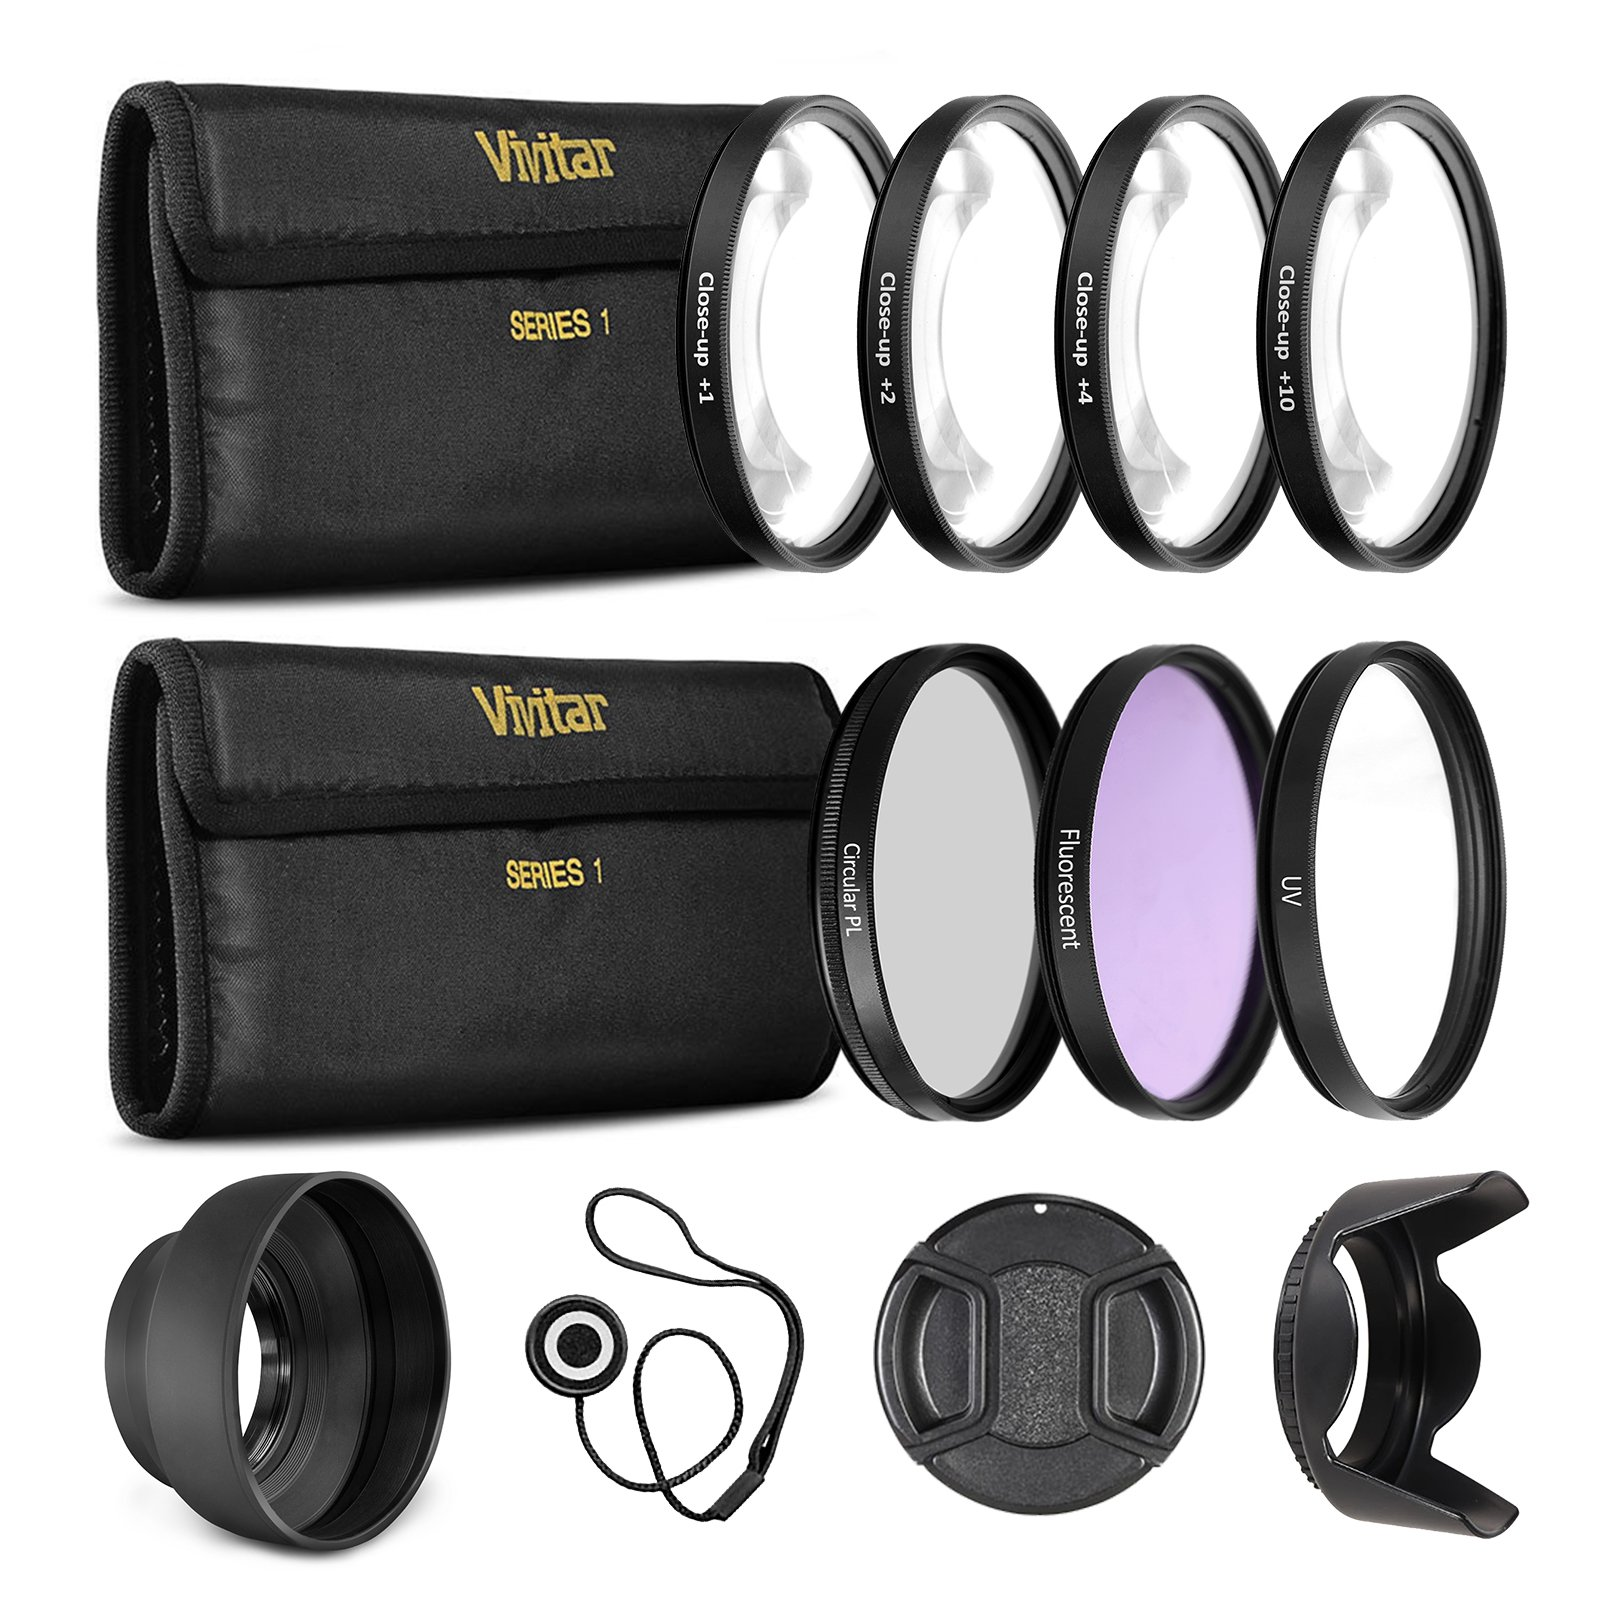 55mm UltraPro Professional Filter Bundle for Lenses with a 55mm Filter Size - Includes 7 Filters (UV, CPL, FL-D, +1, +2, +4, +10 Macro Close-Up Filters), Lens Hoods, & More by UltraPro